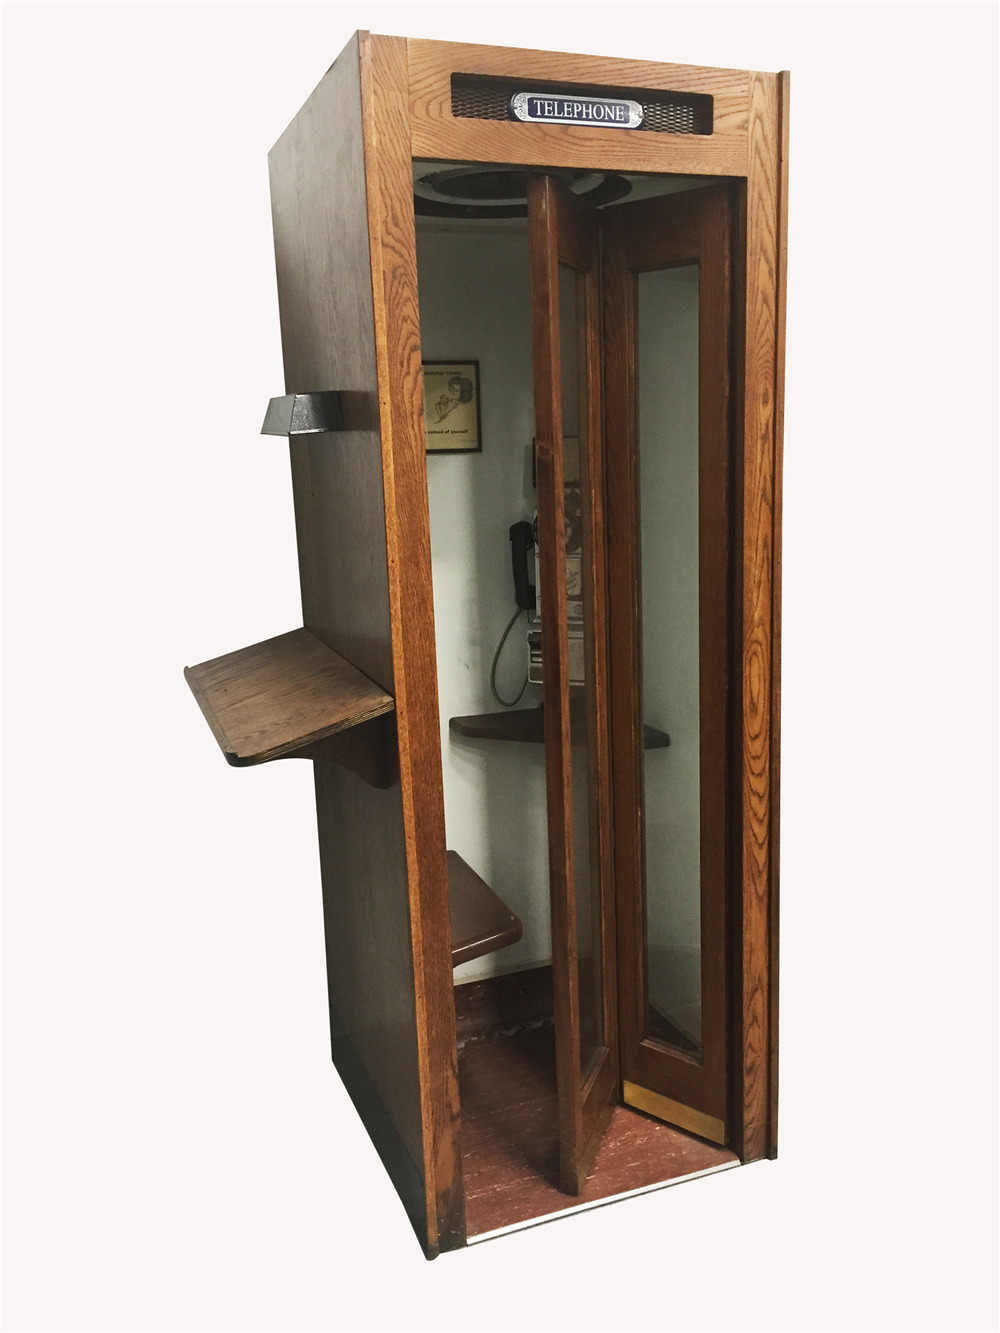 1930S-40S BELL TELEPHONE WOODEN PHONE BOOTH